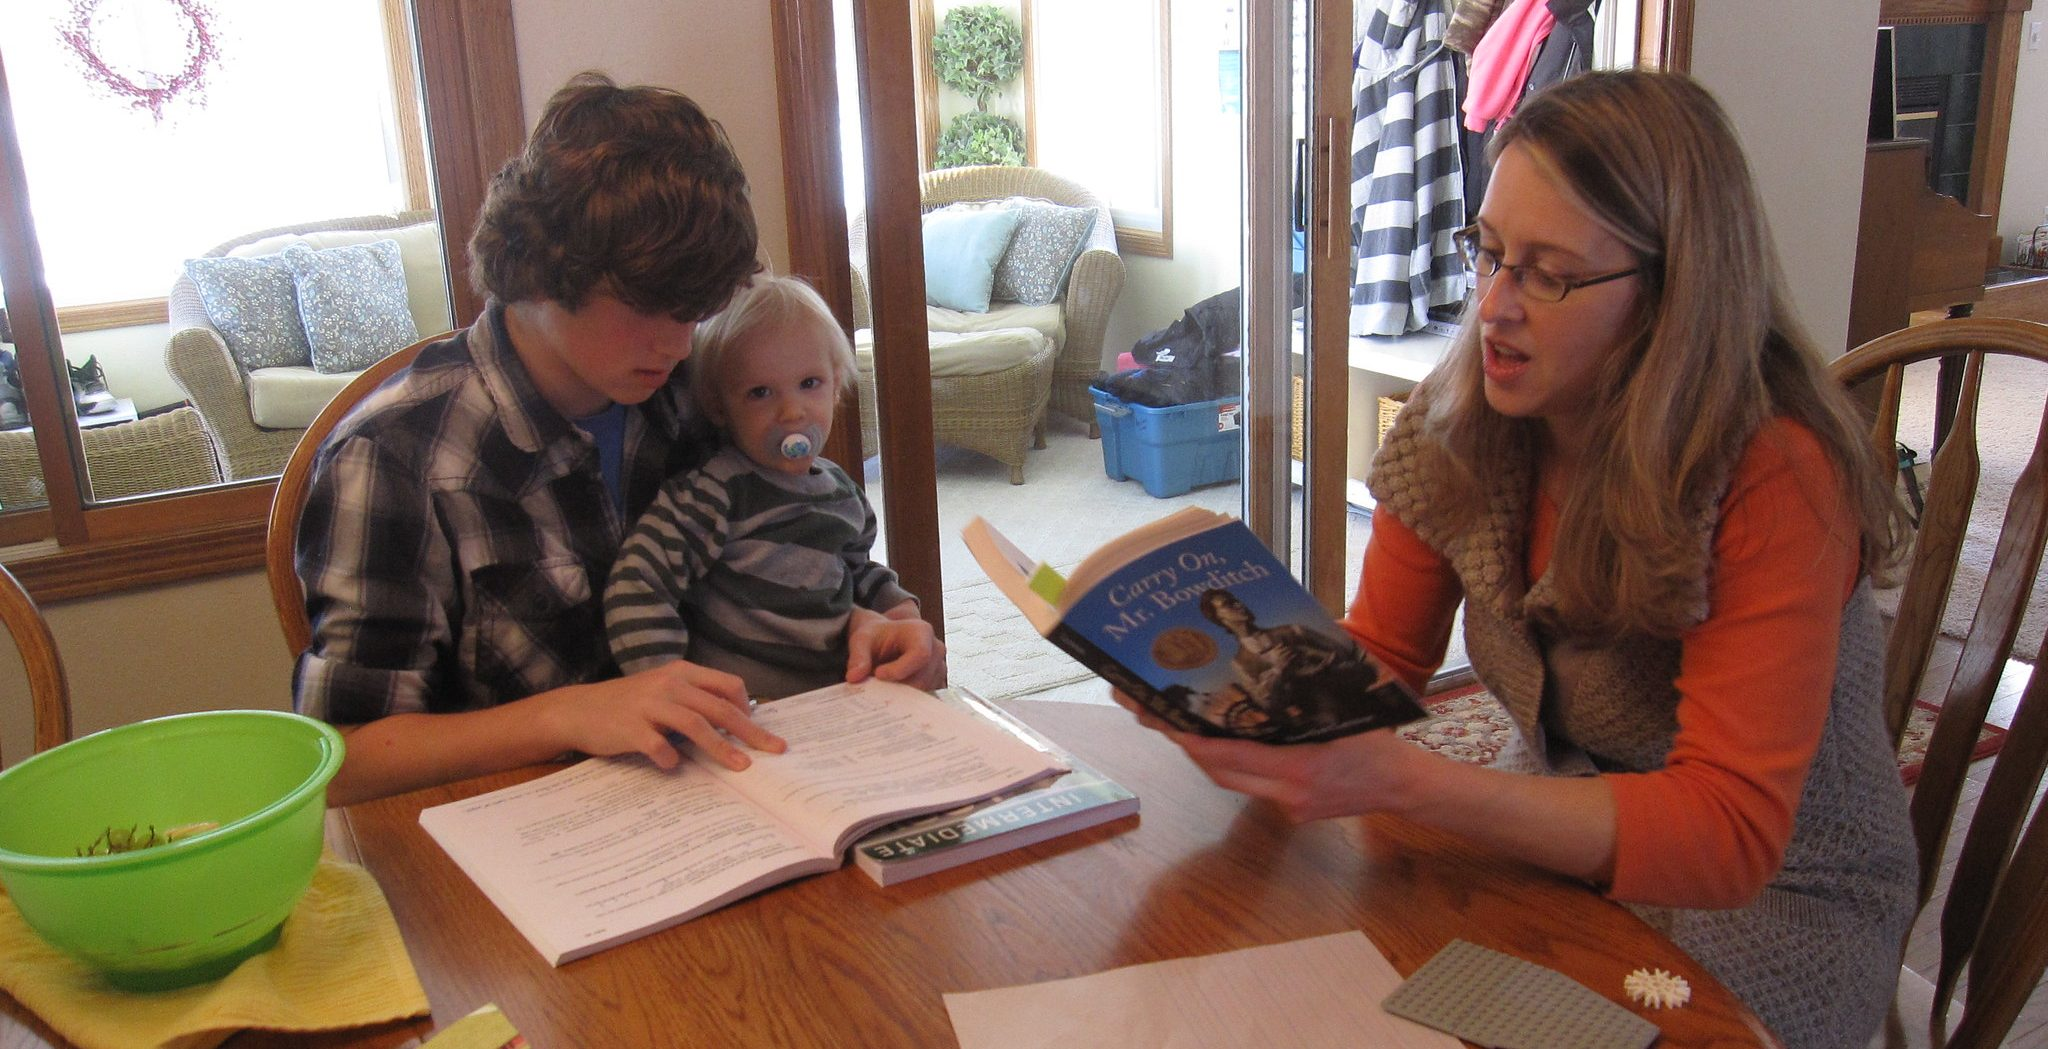 Homeschooling: Curriculums, Benefits, and Problems